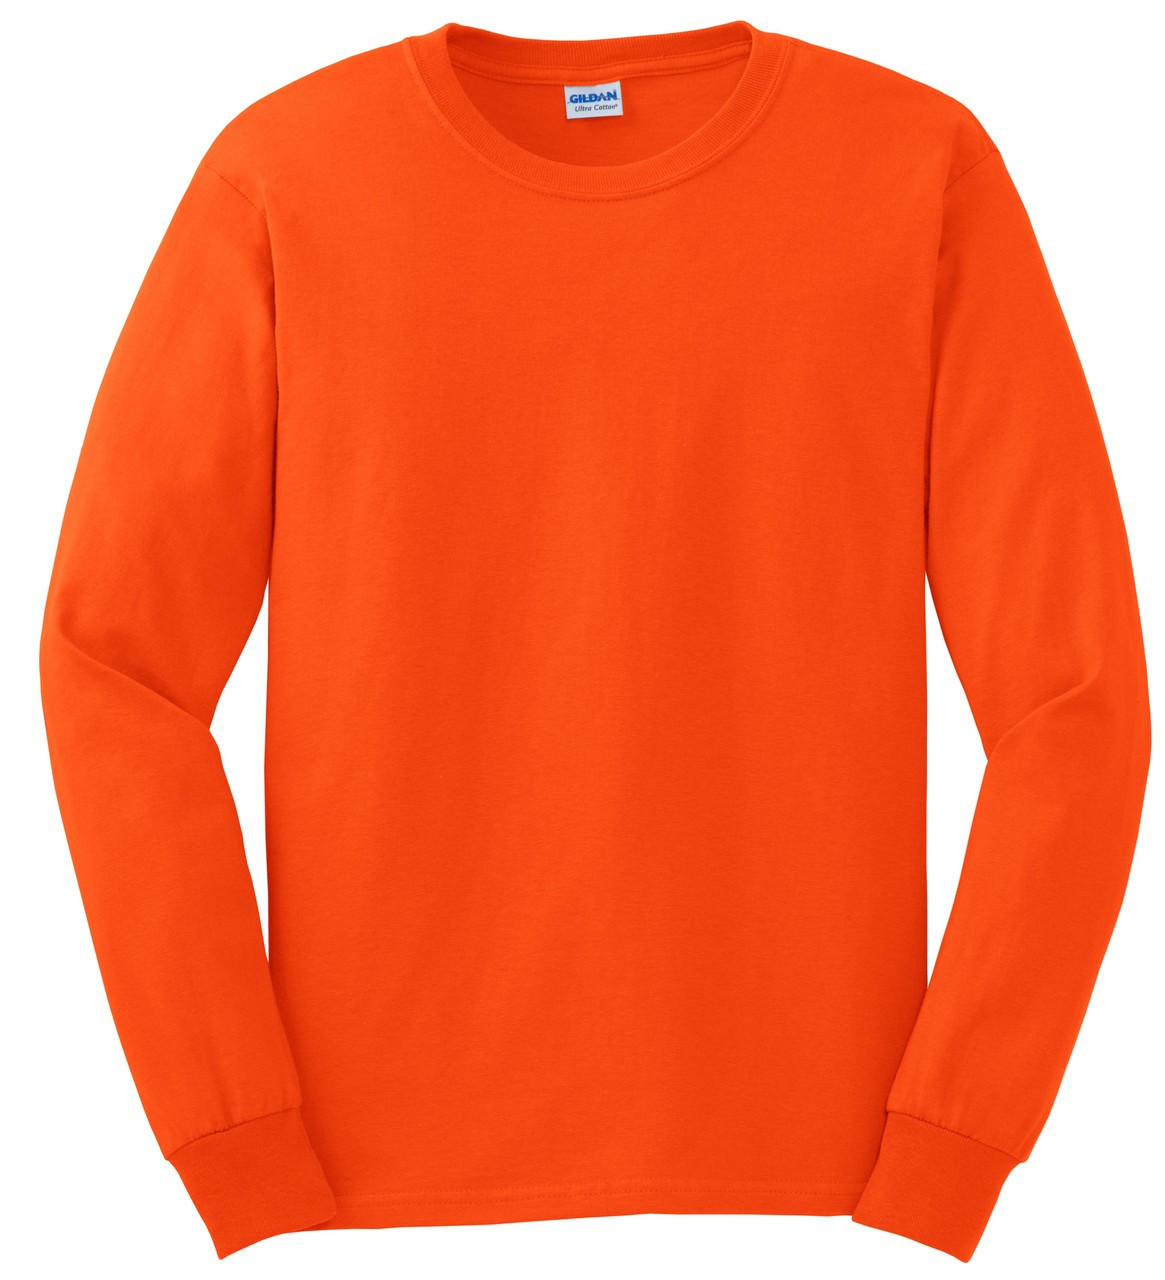 34bad95df0d Gildan G2400O Orange Mens Classic Long Sleeve T-Shirt. Price   8.58. Image 1